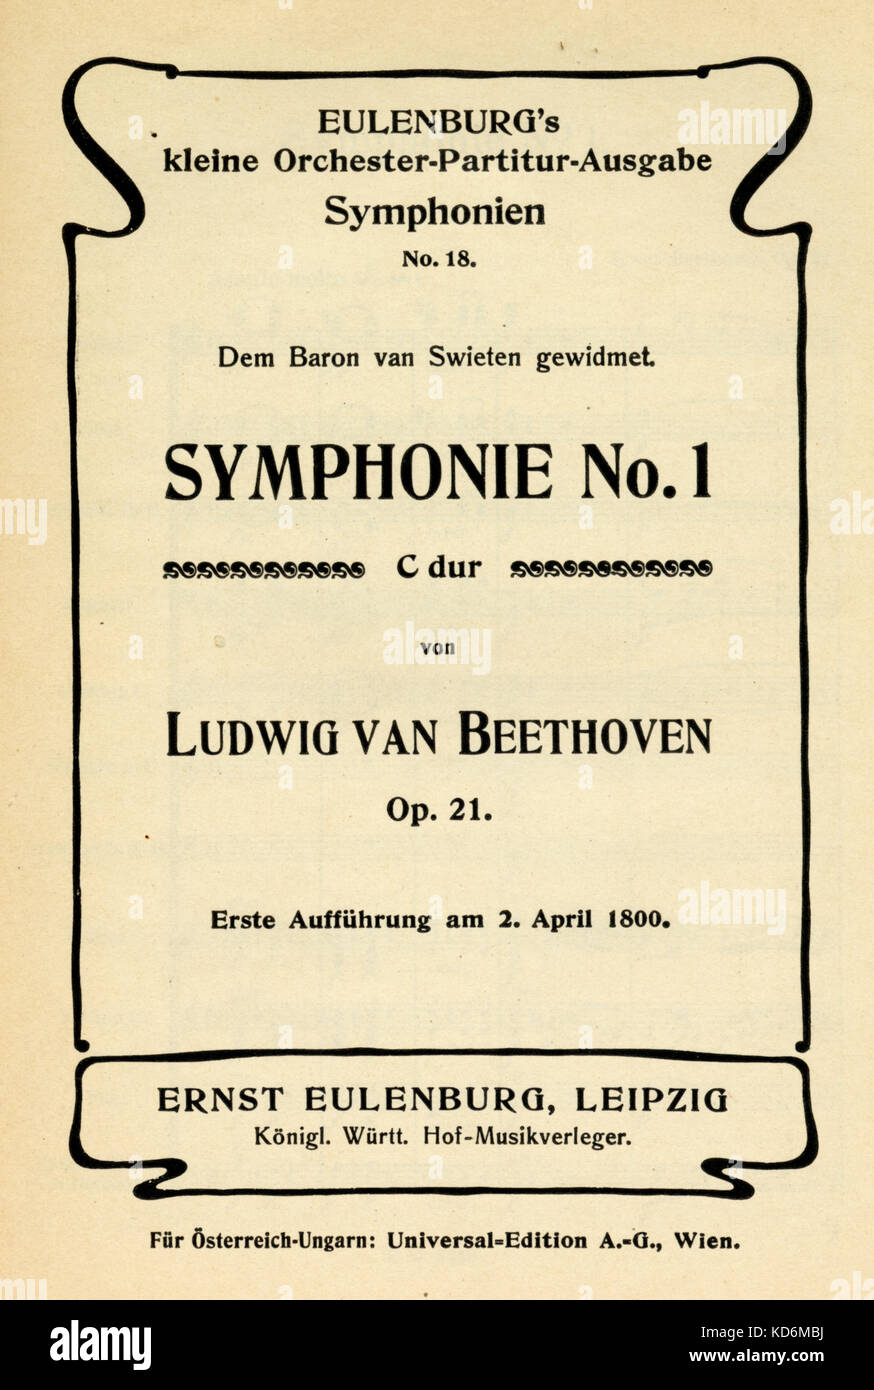 Ludwig van Beethoven - title page of score for Symphony No 1 in D